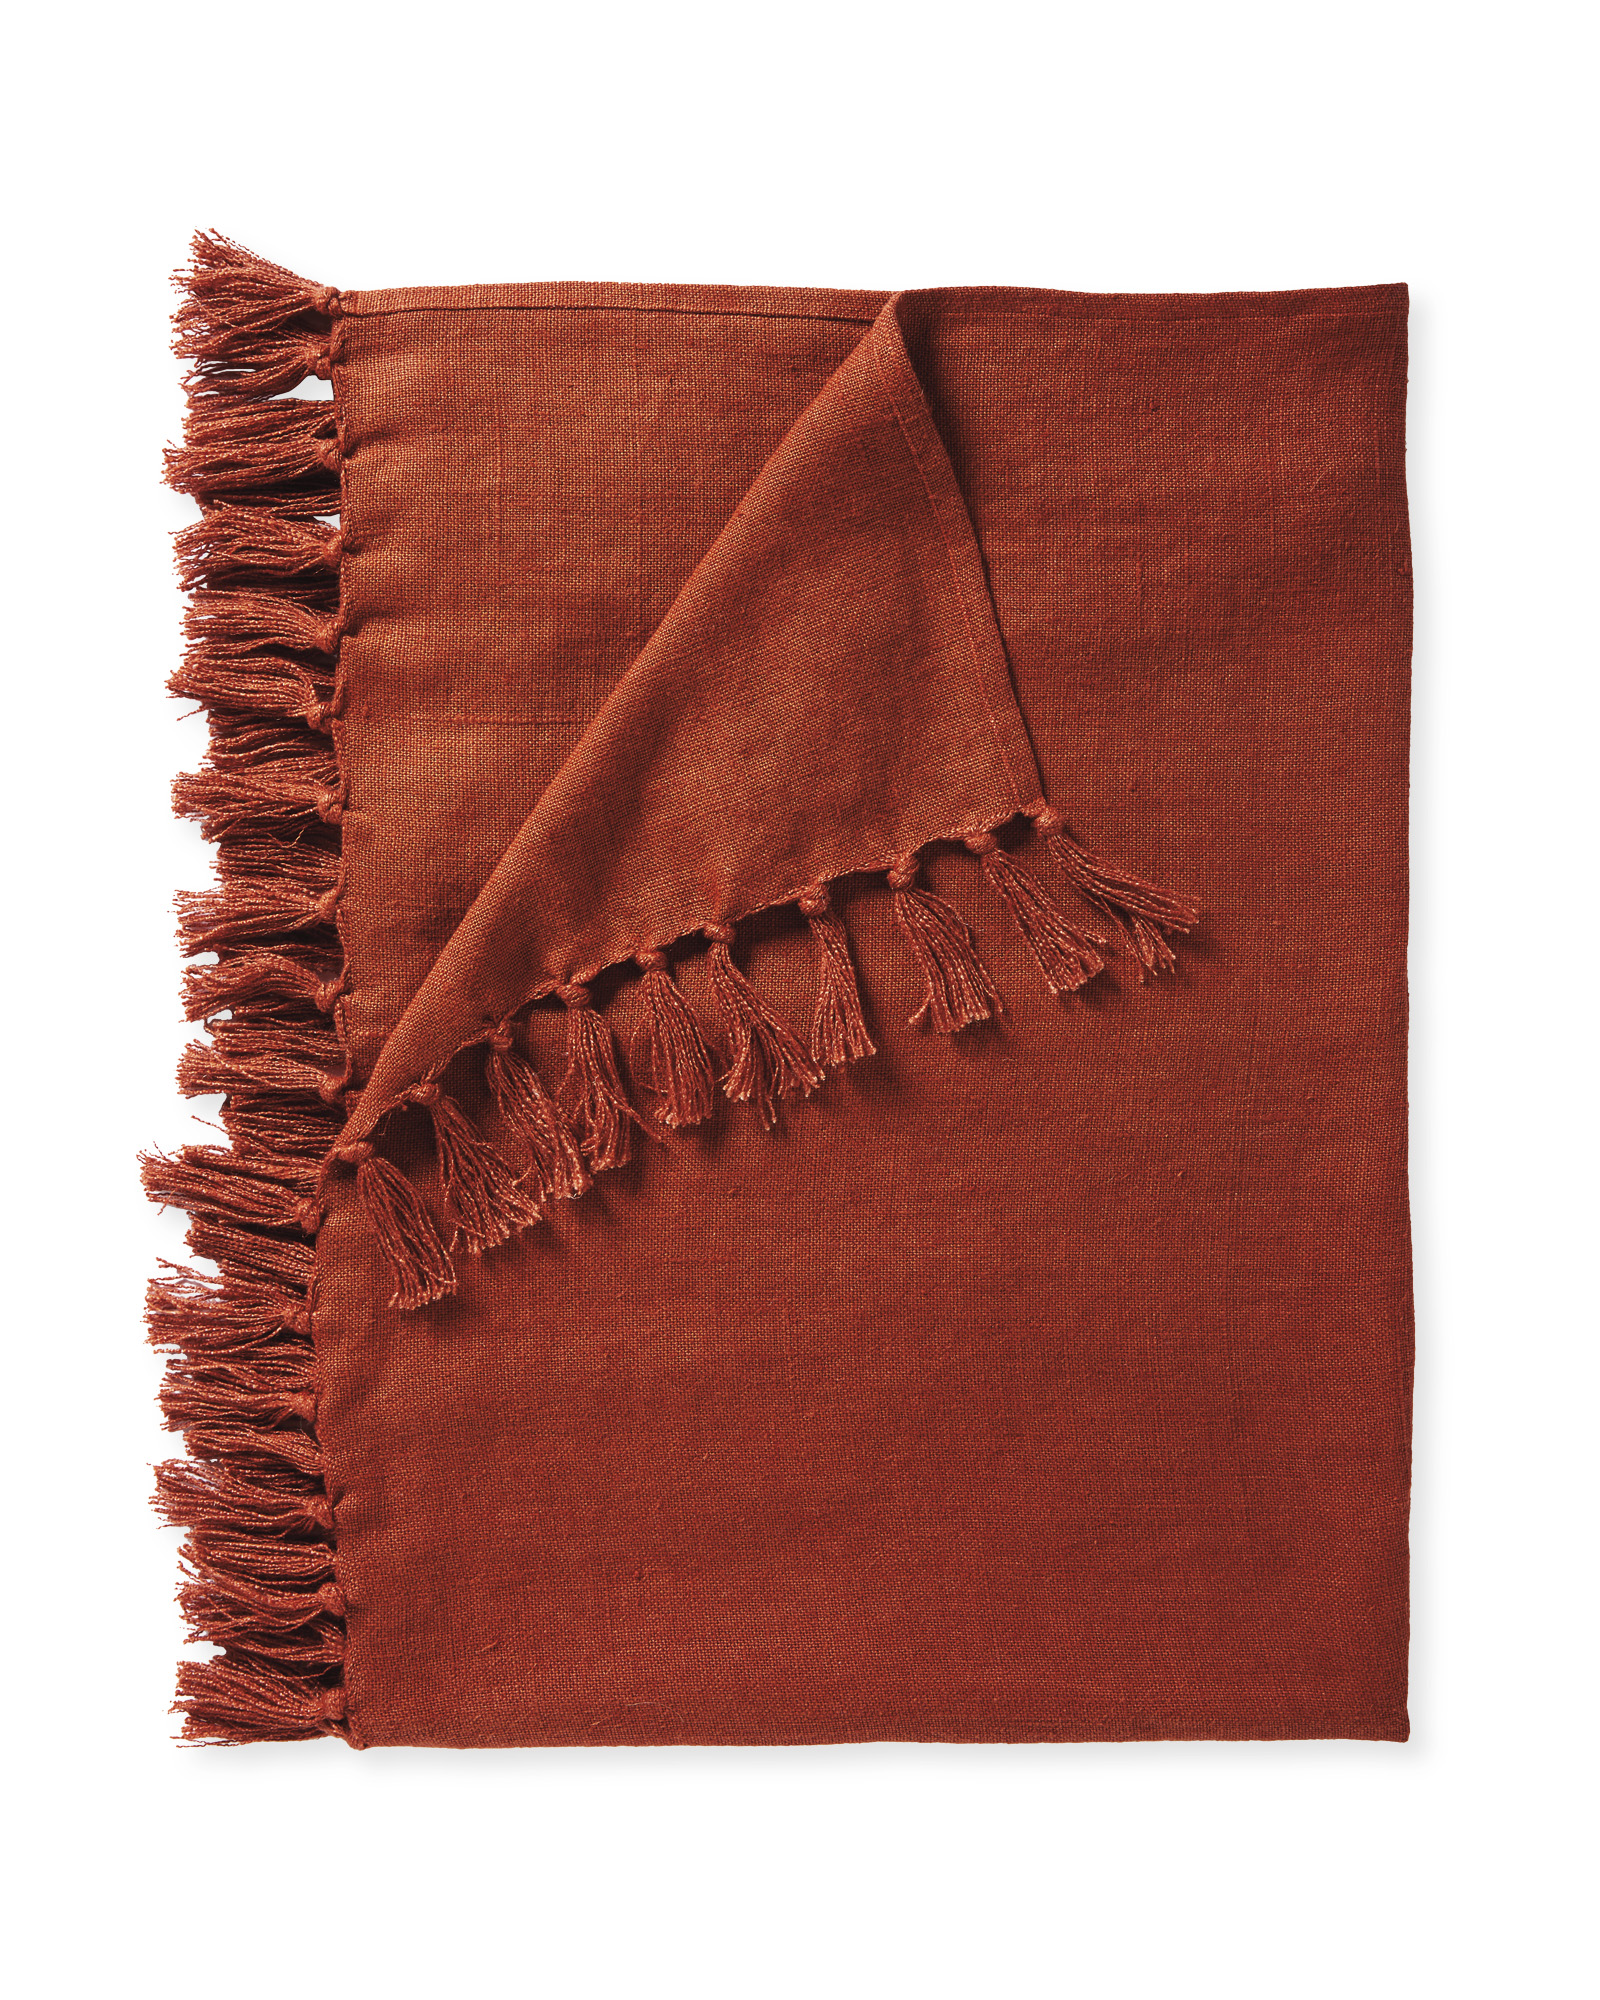 Mendocino Linen Throw, Terracotta